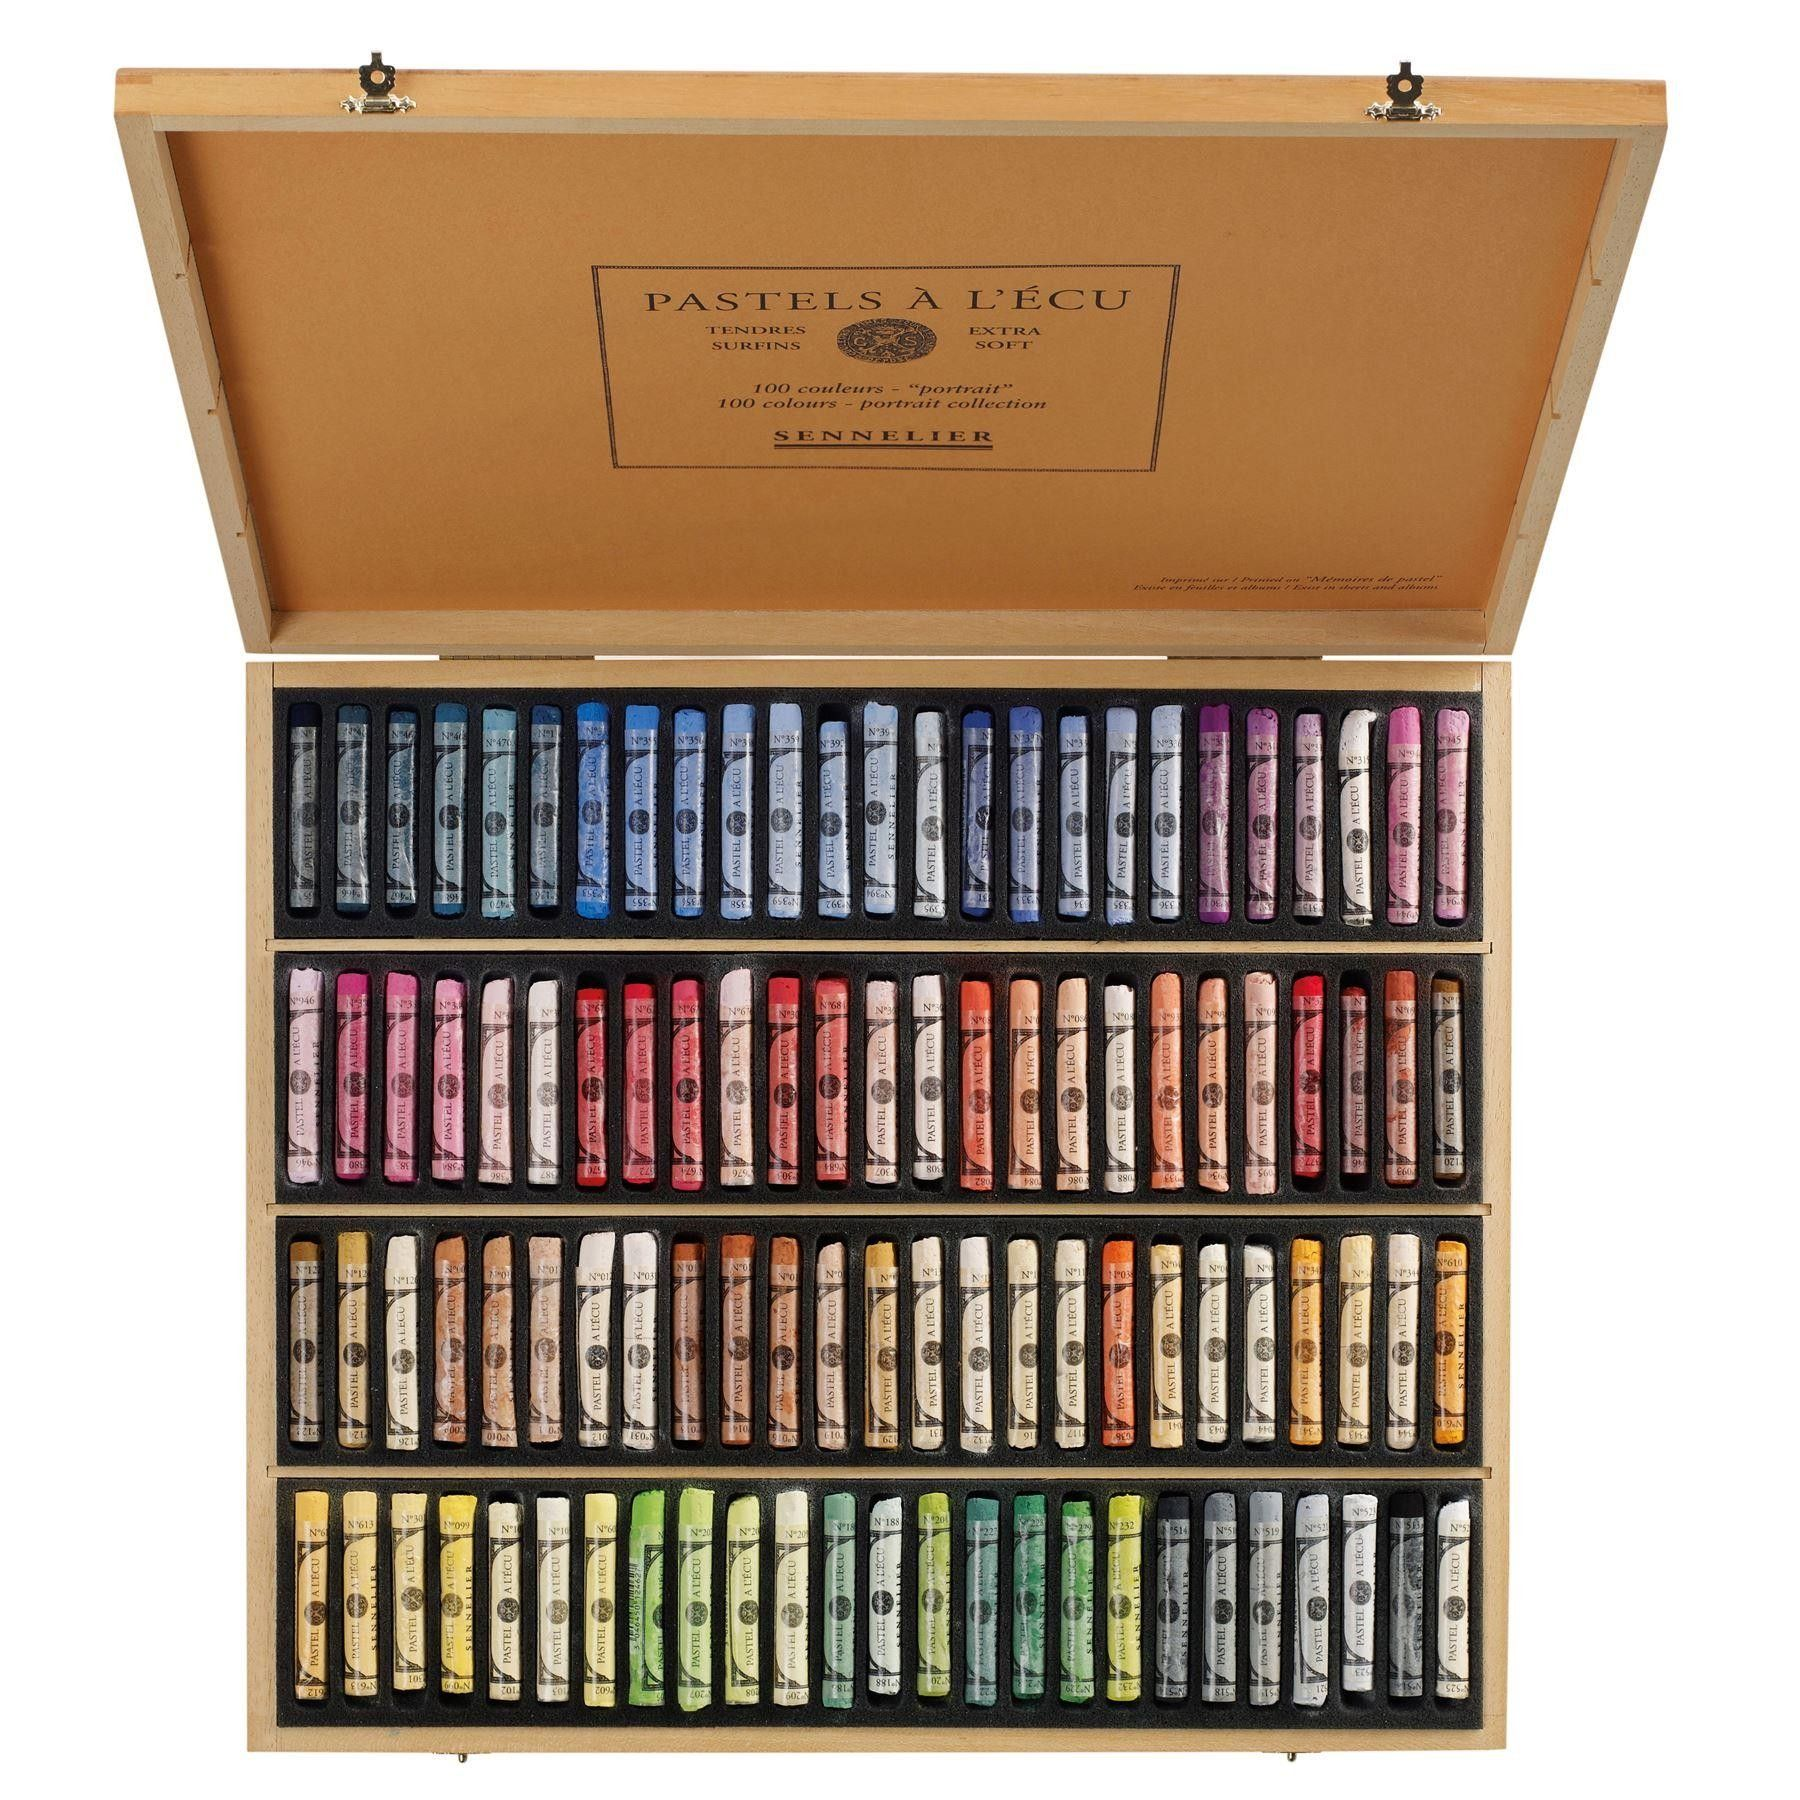 Sennelier Soft Pastels Portrait Set Wooden Box 100 Sticks Pastels Pencils Charcoal Soft Pastel Pastel Portraits Sennelier